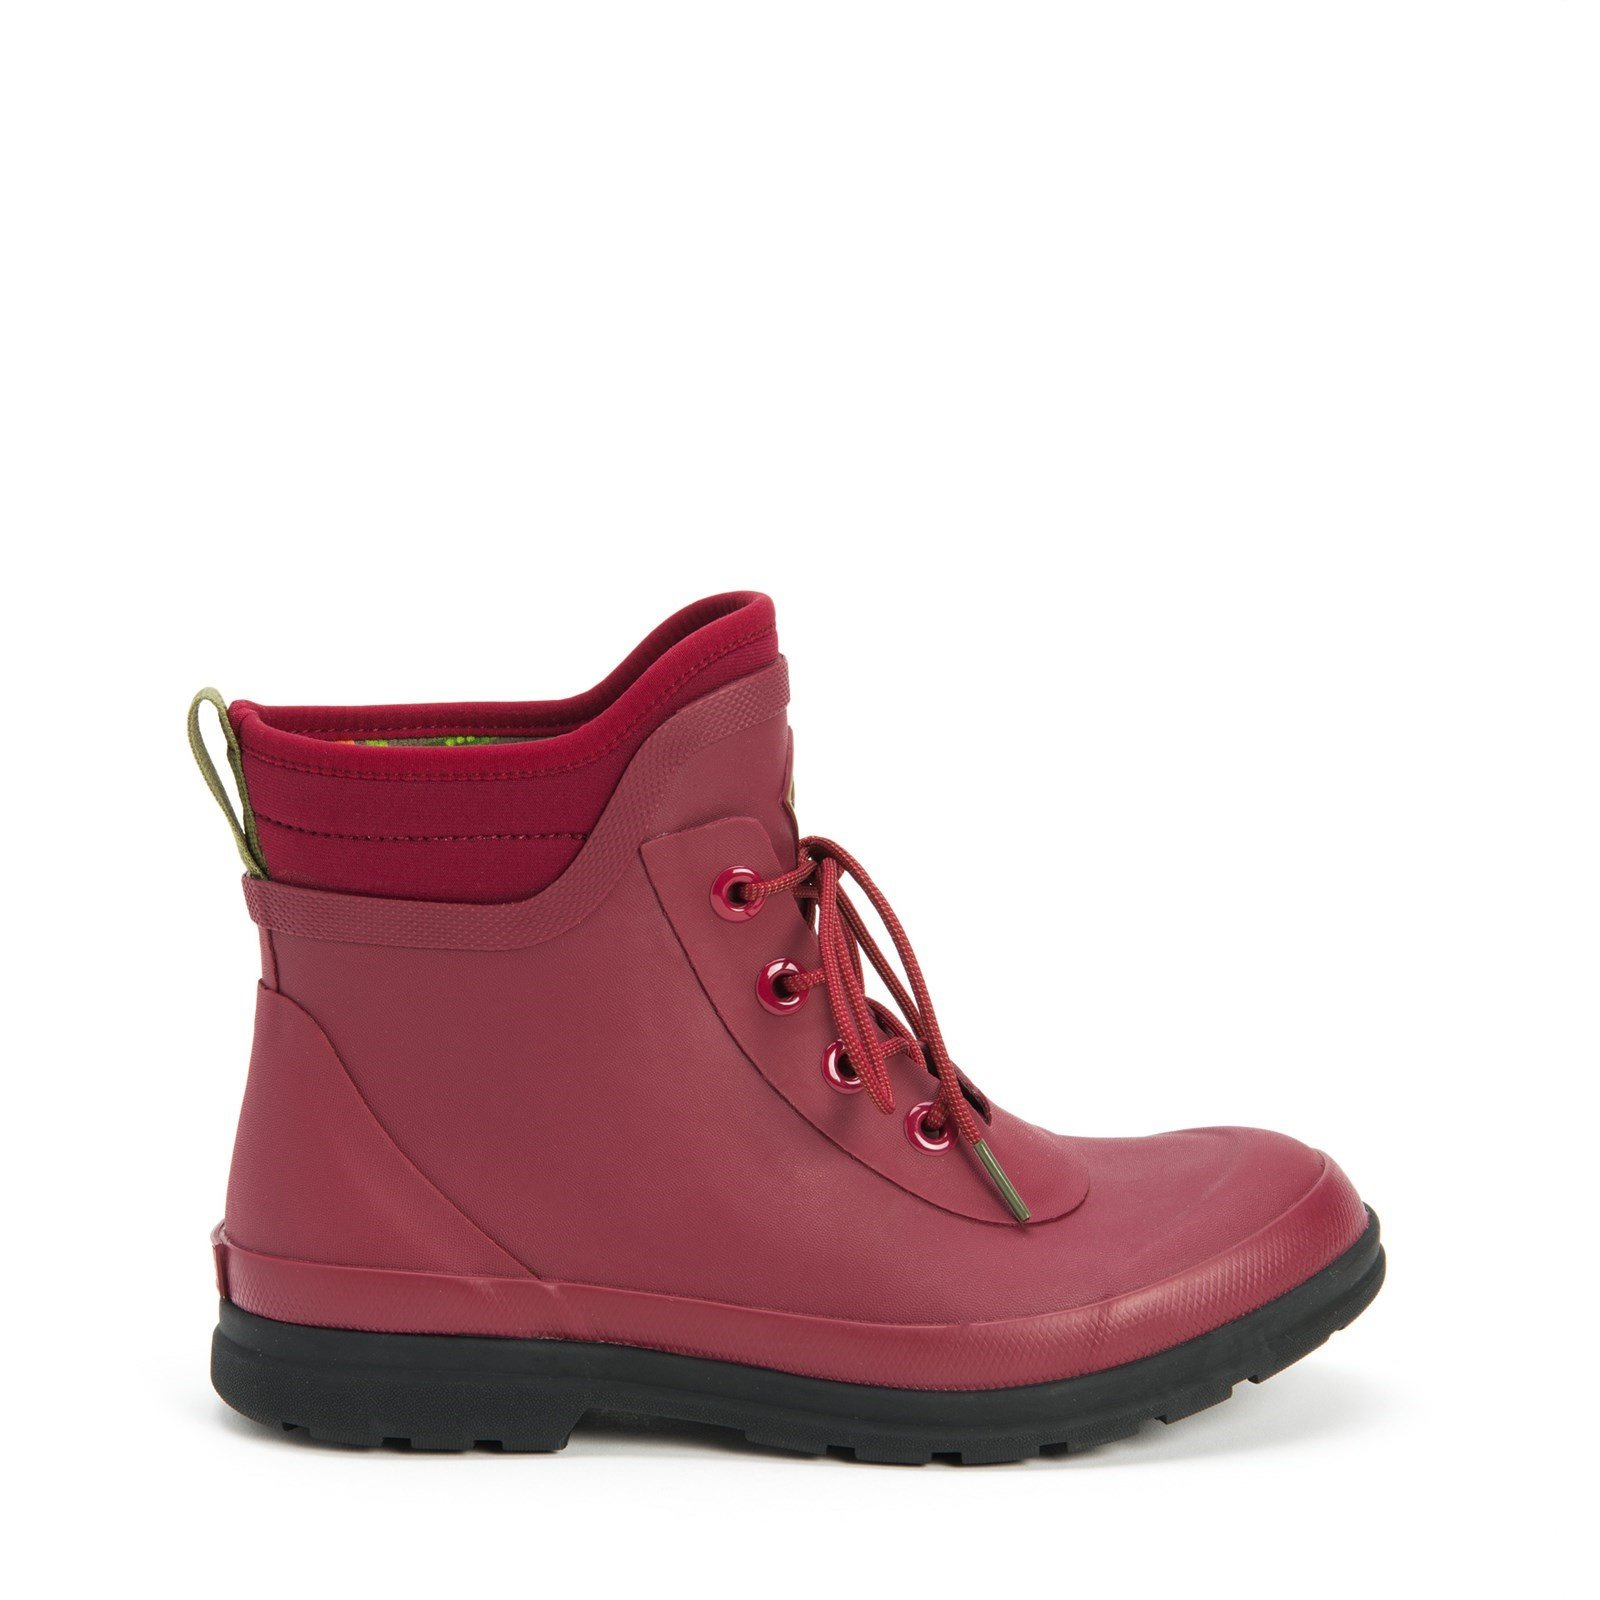 Muck Boots Women's Originals Lace Up Ankle Boot Various Colours 30079 - Berry 4